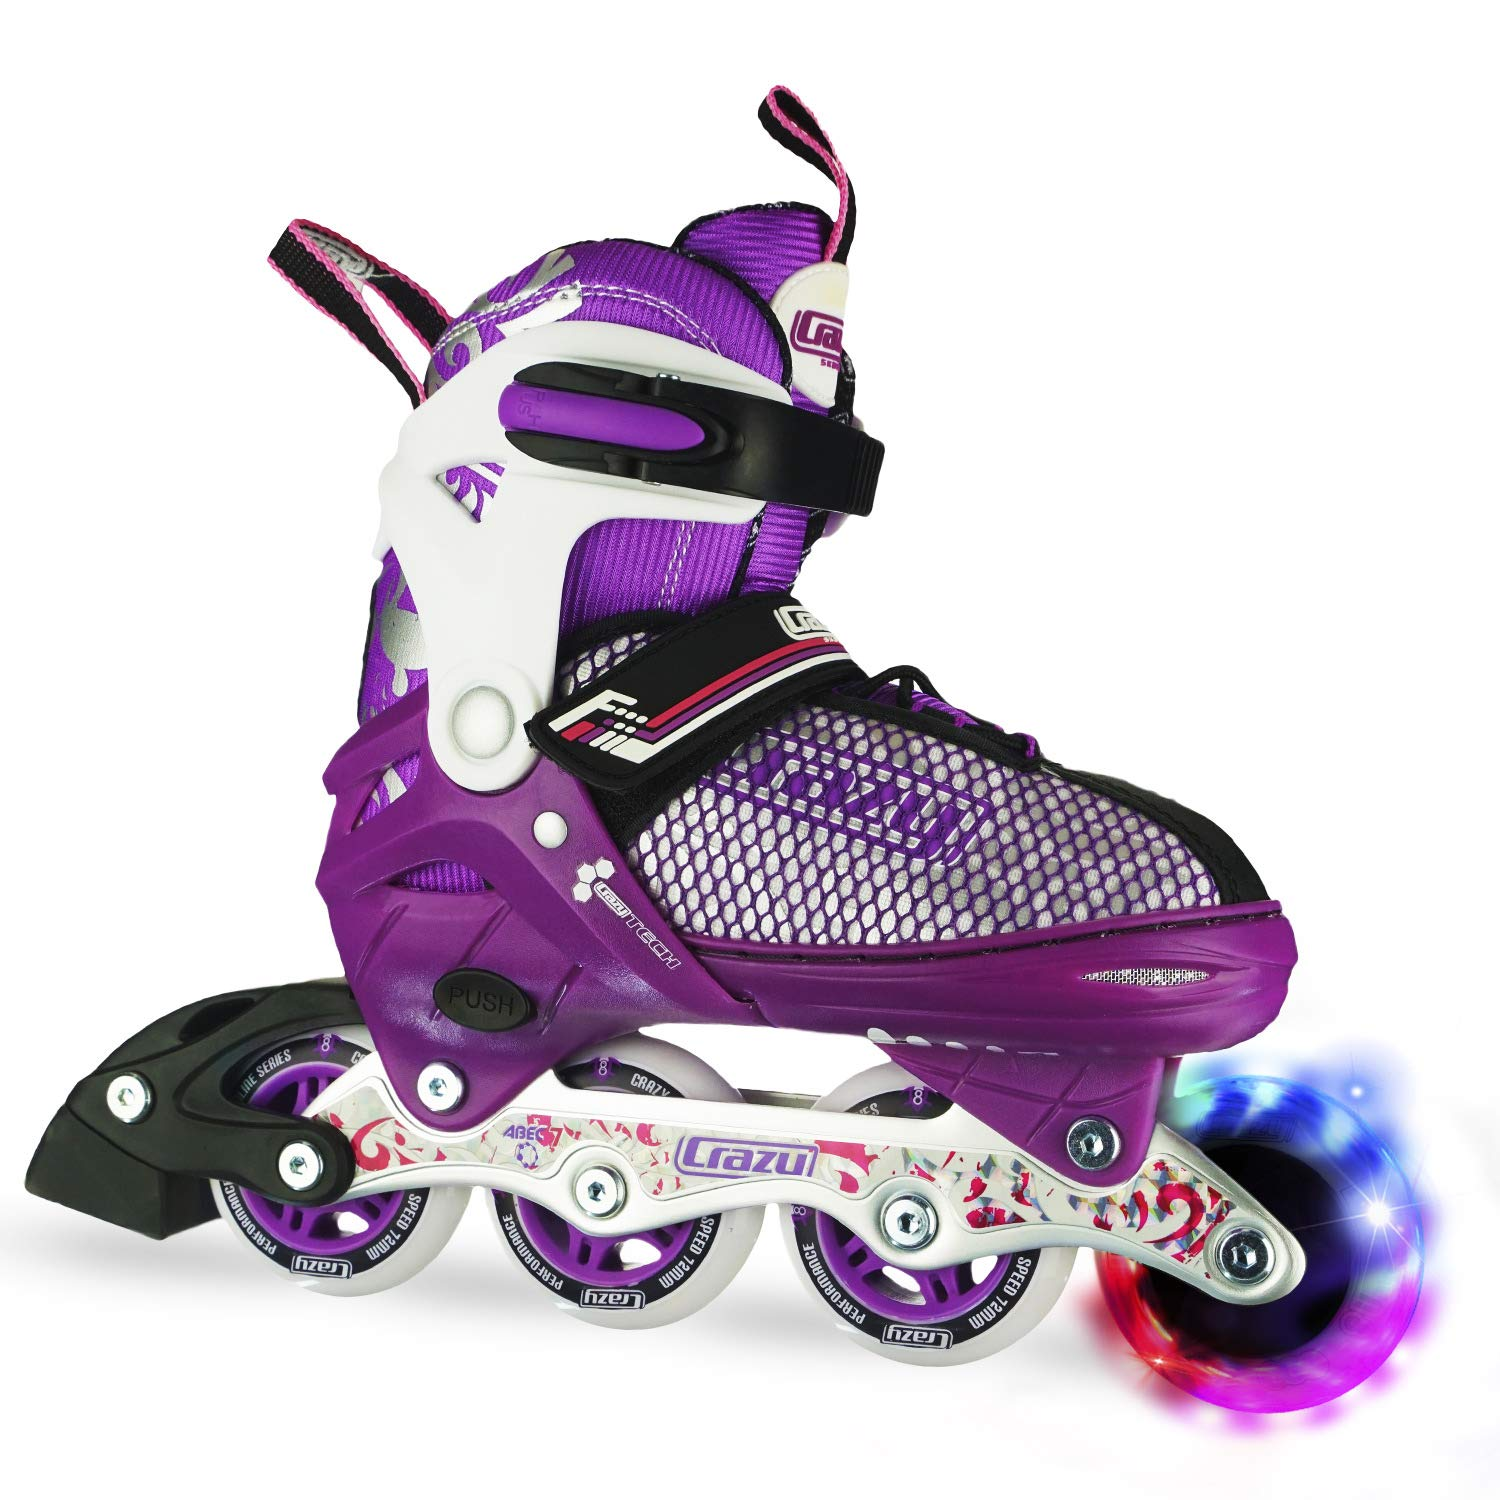 Crazy Skates Adjustable Inline Skates with Light Up Wheels   Roller Blades for Girls and Boys   Available in Two Colors